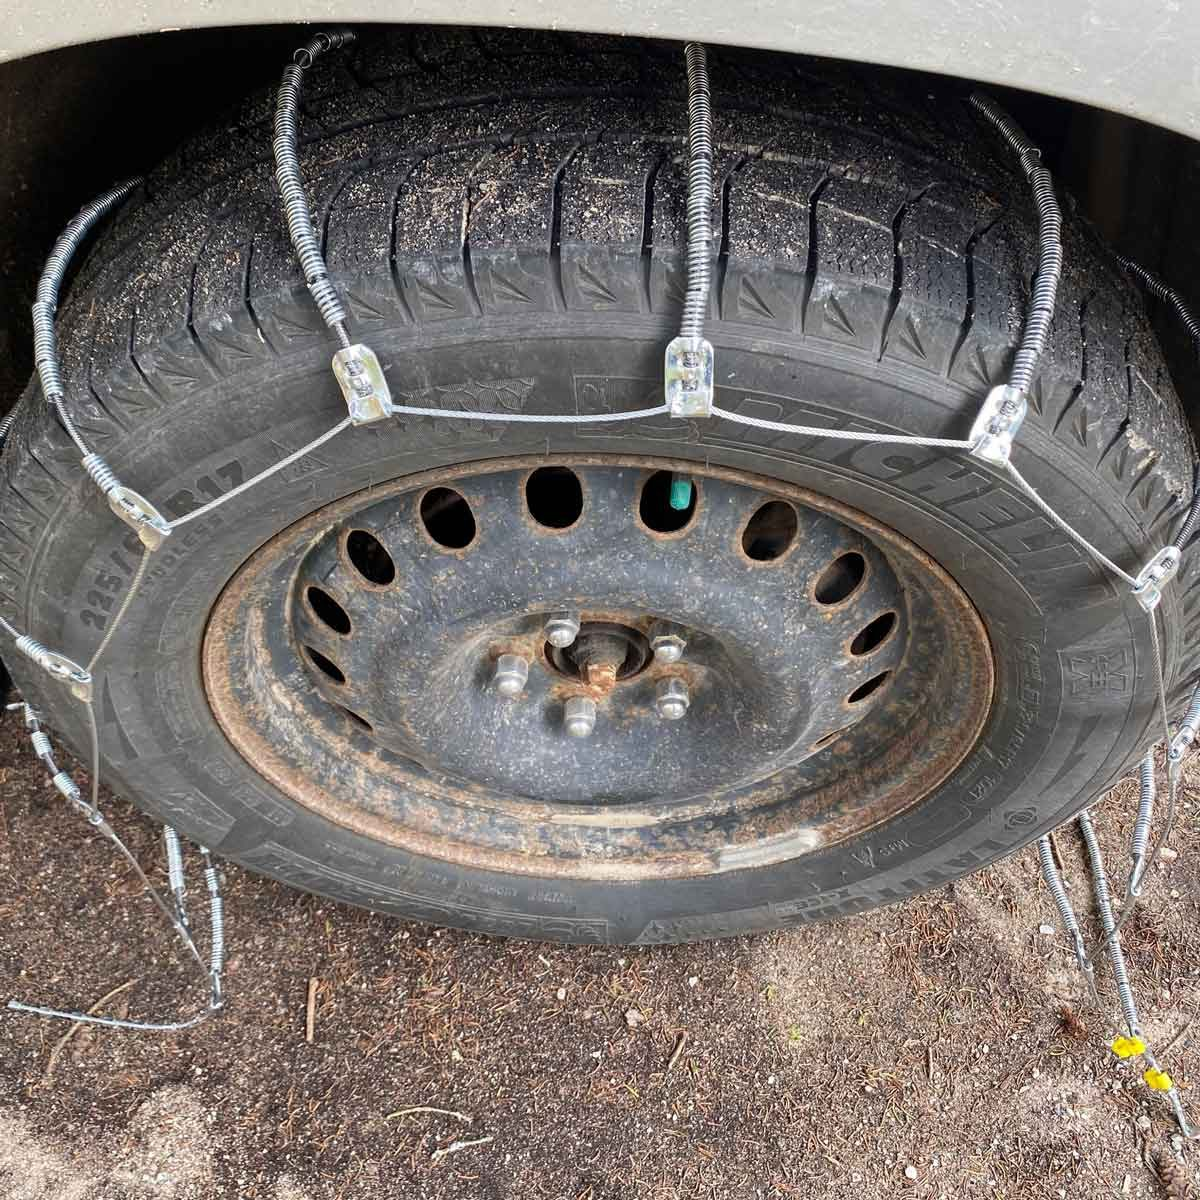 Drape chains over the tires